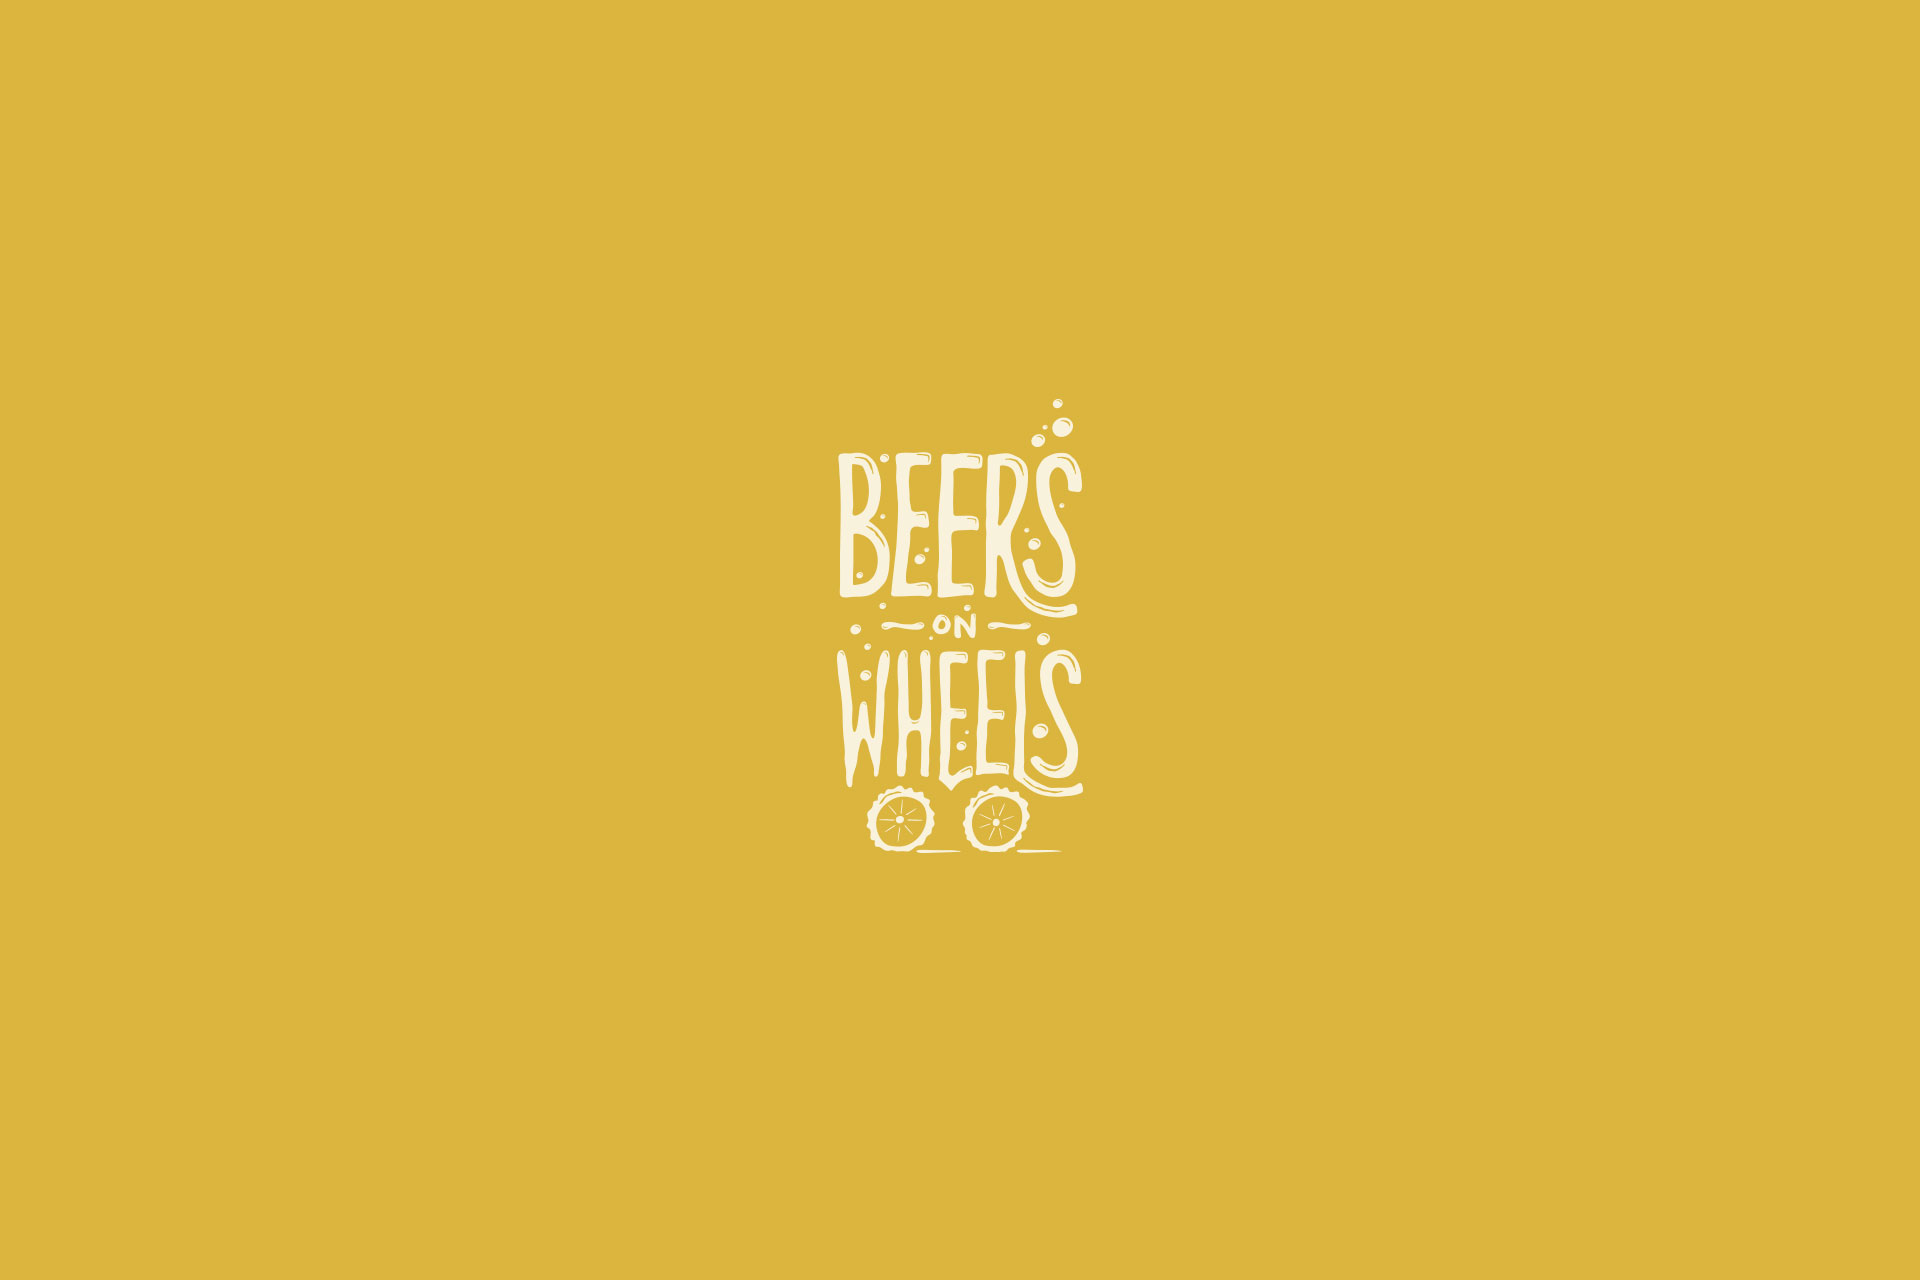 Logos & Brandmarks Beers on Wheels